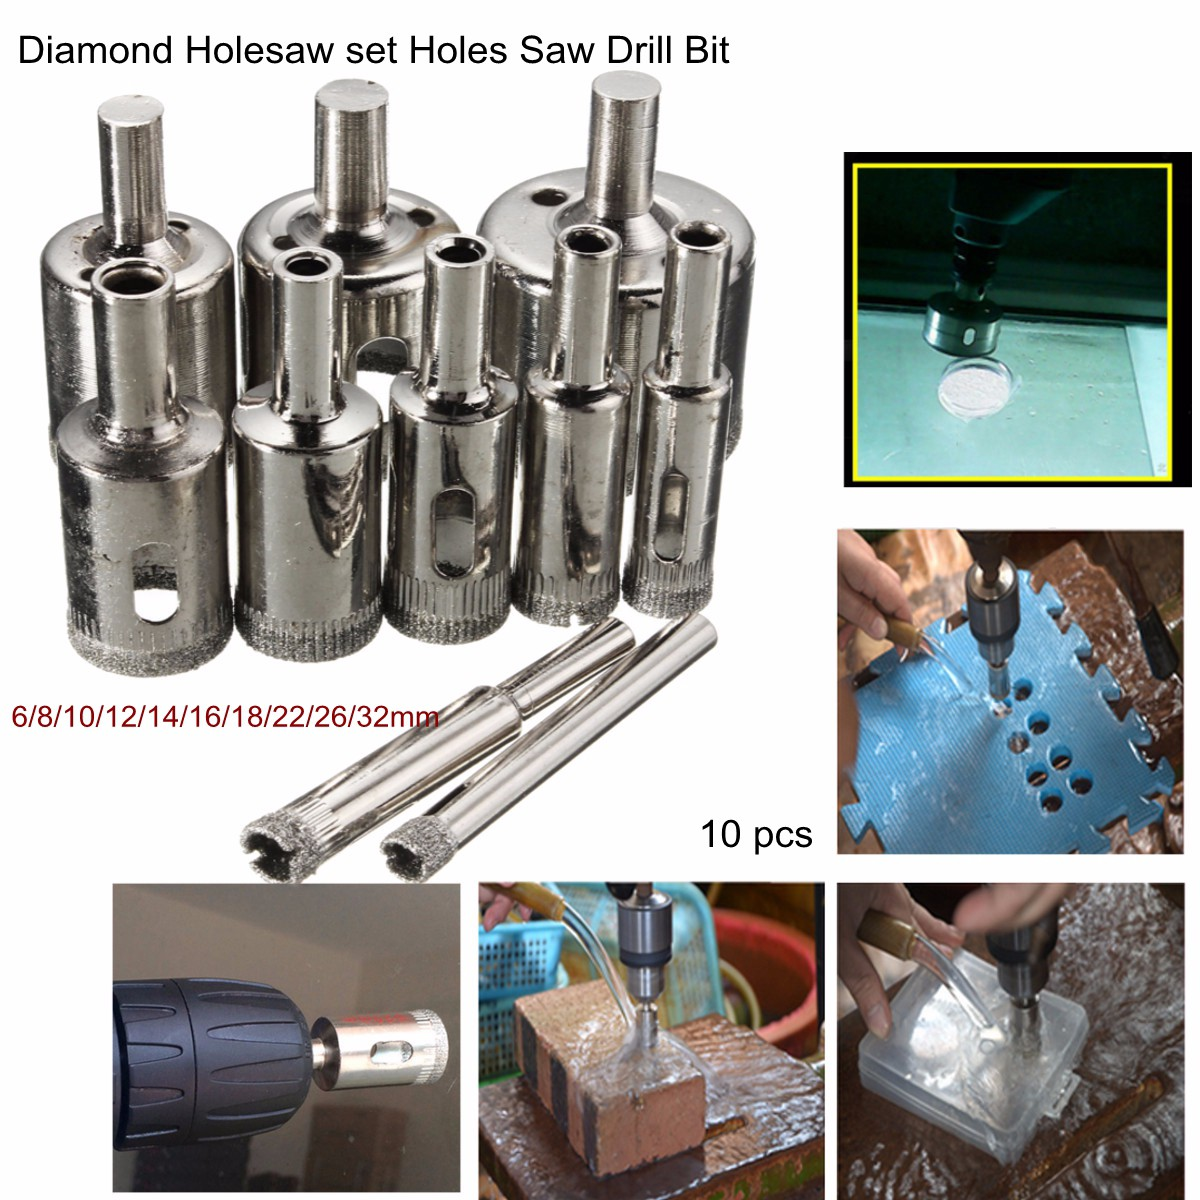 "10Pcs 50mm/2"" Diamond Holesaw Drill Bit Hole Saw Set Hole Saw Cutter For Tile Ceramic Glass Marble, Silver"